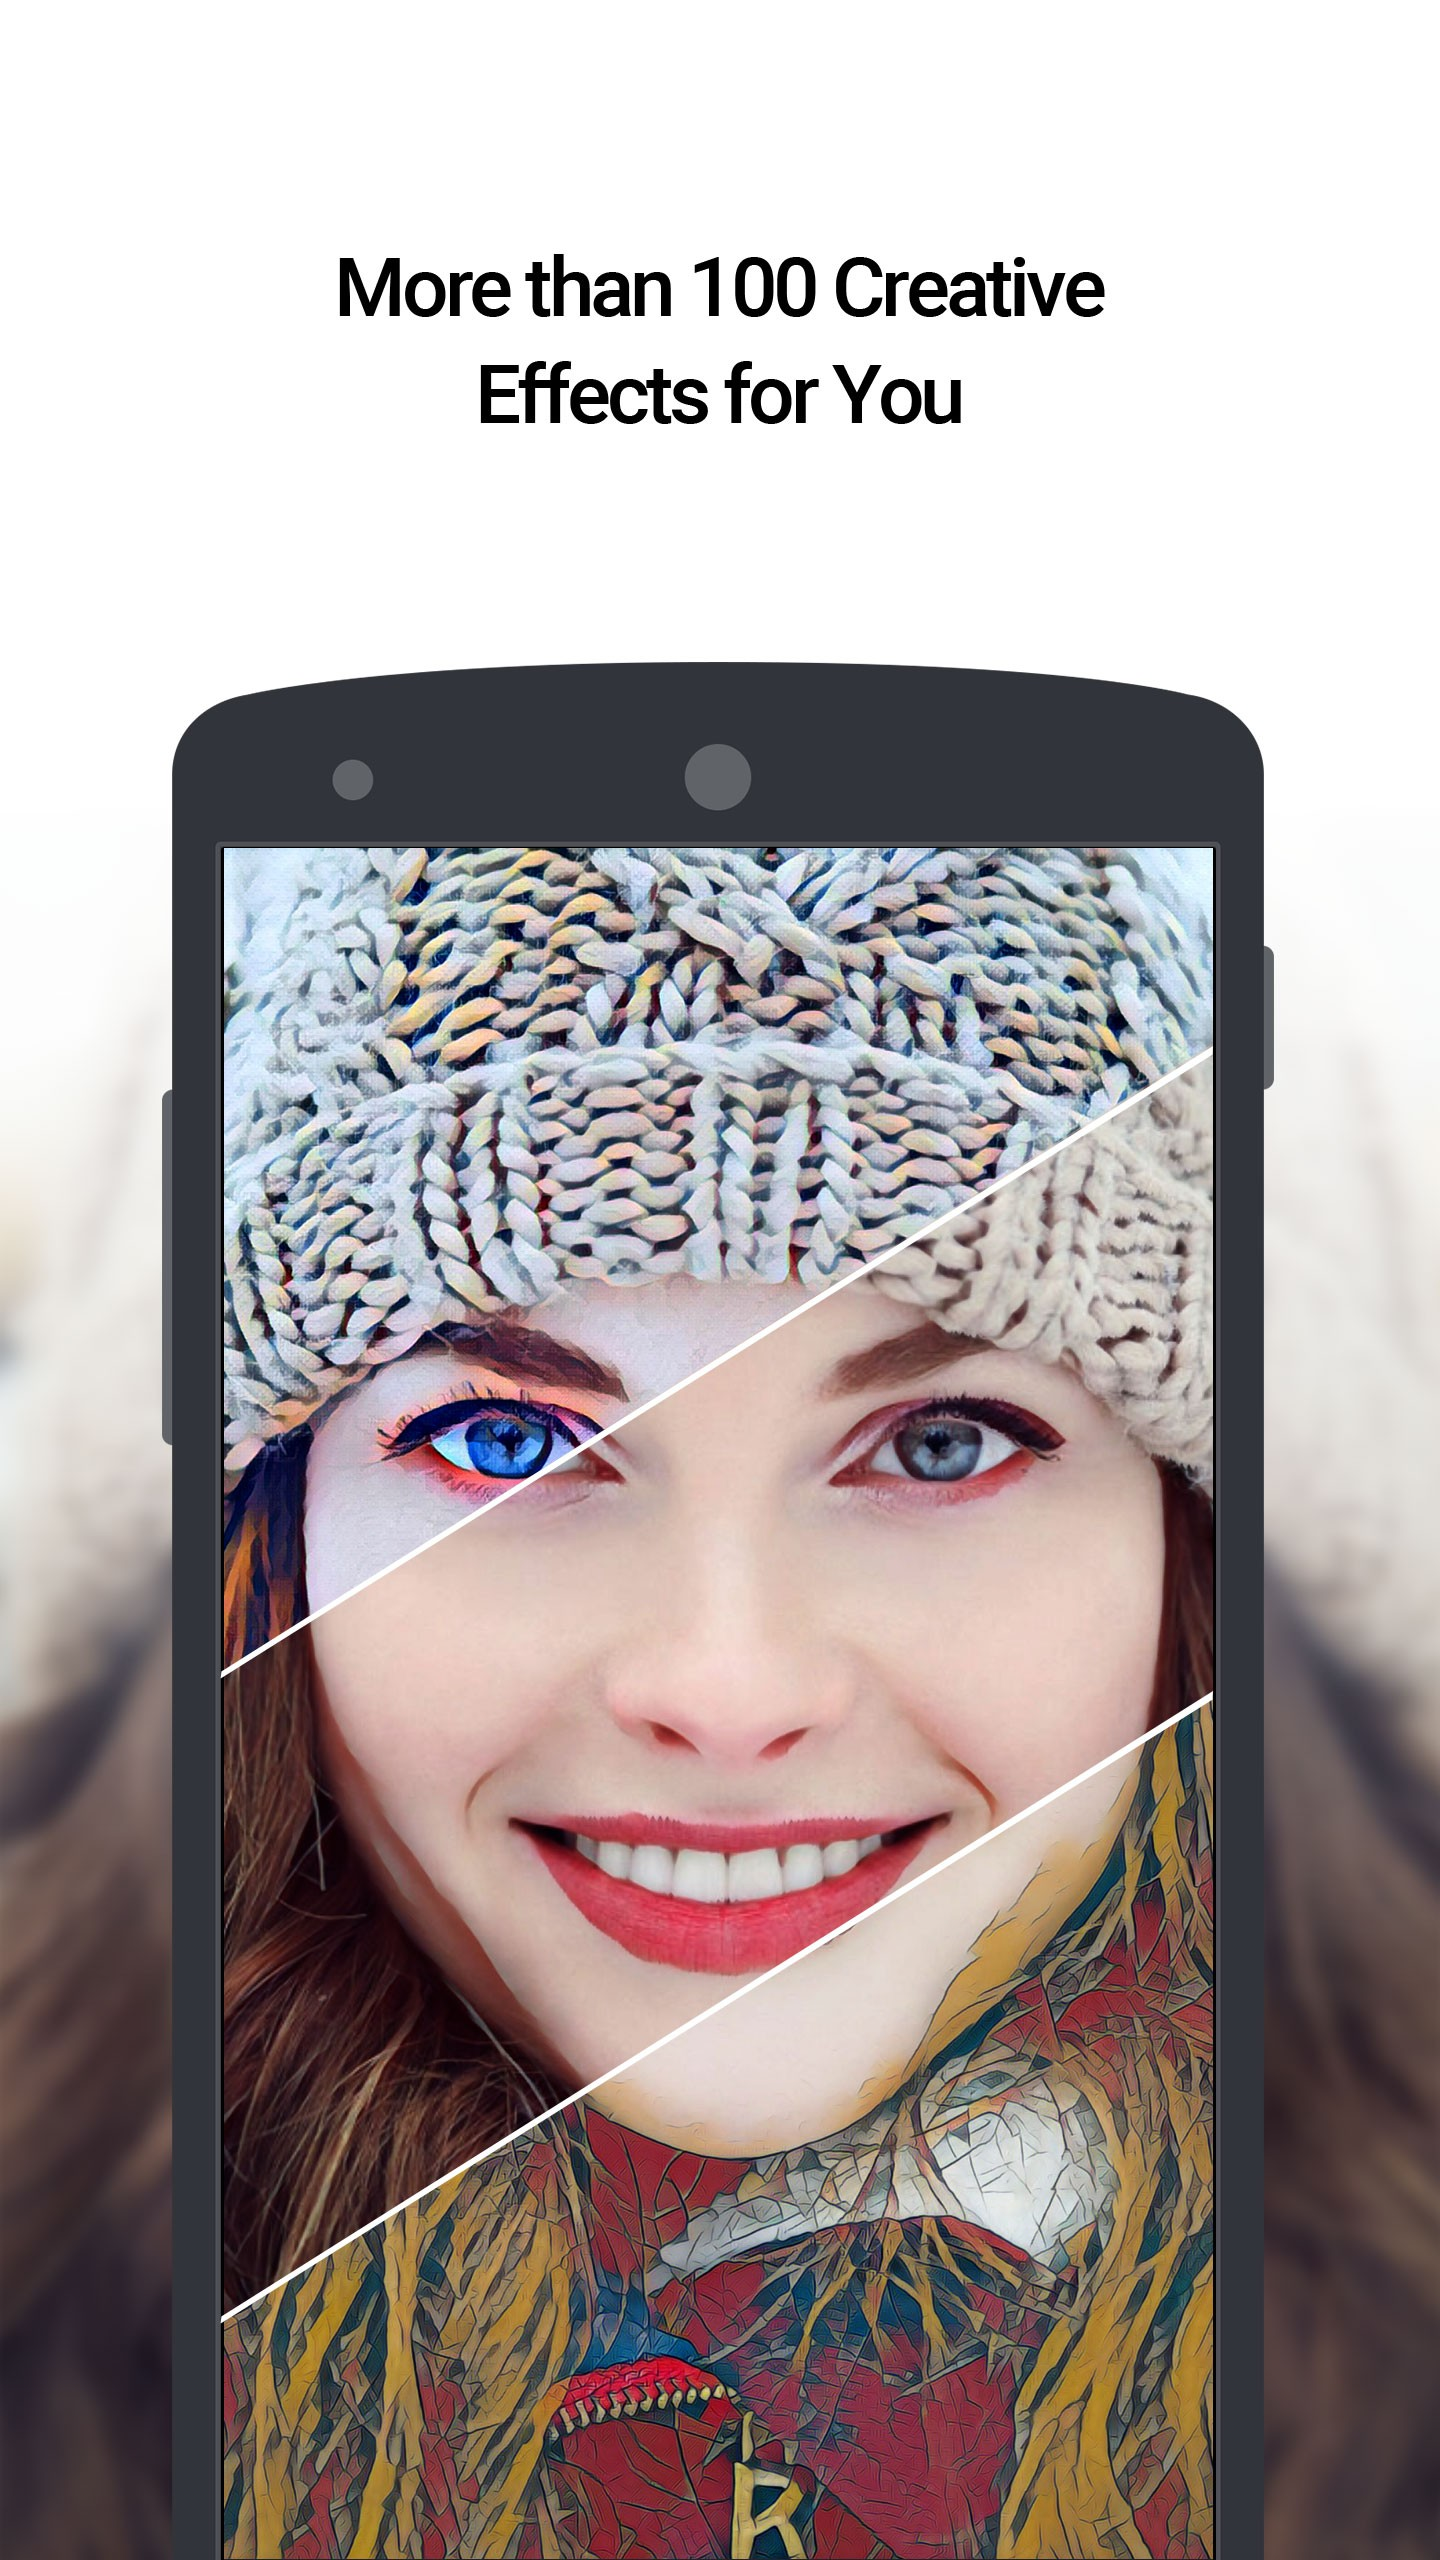 Picas - Free Art Photo Filter